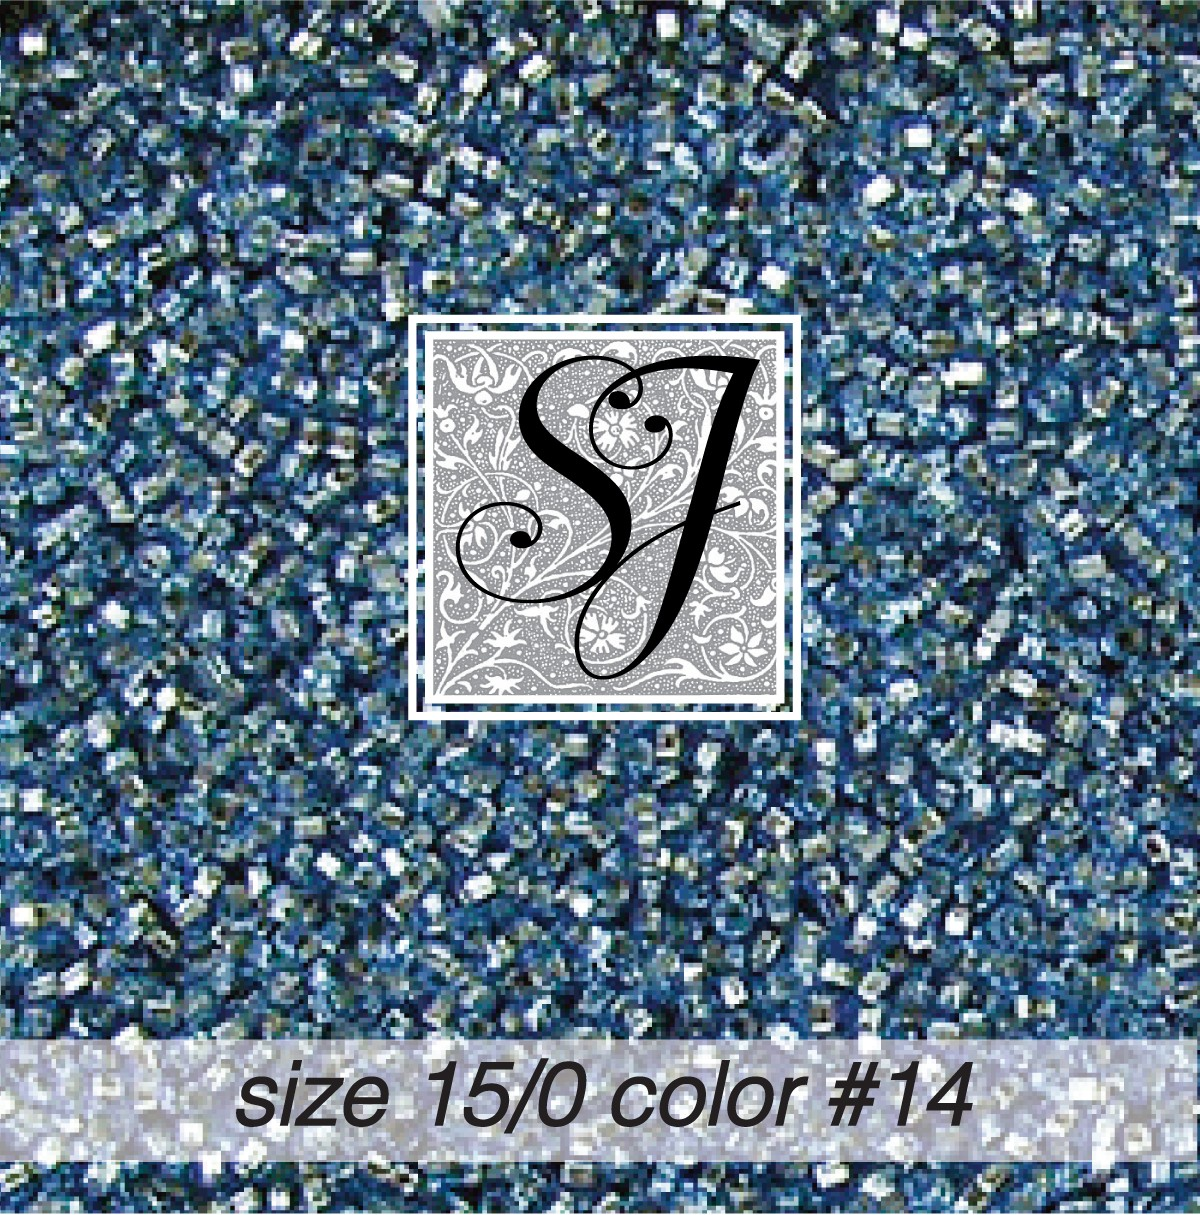 14 Antique Blue Silver Lined 15/0 Seed Bead